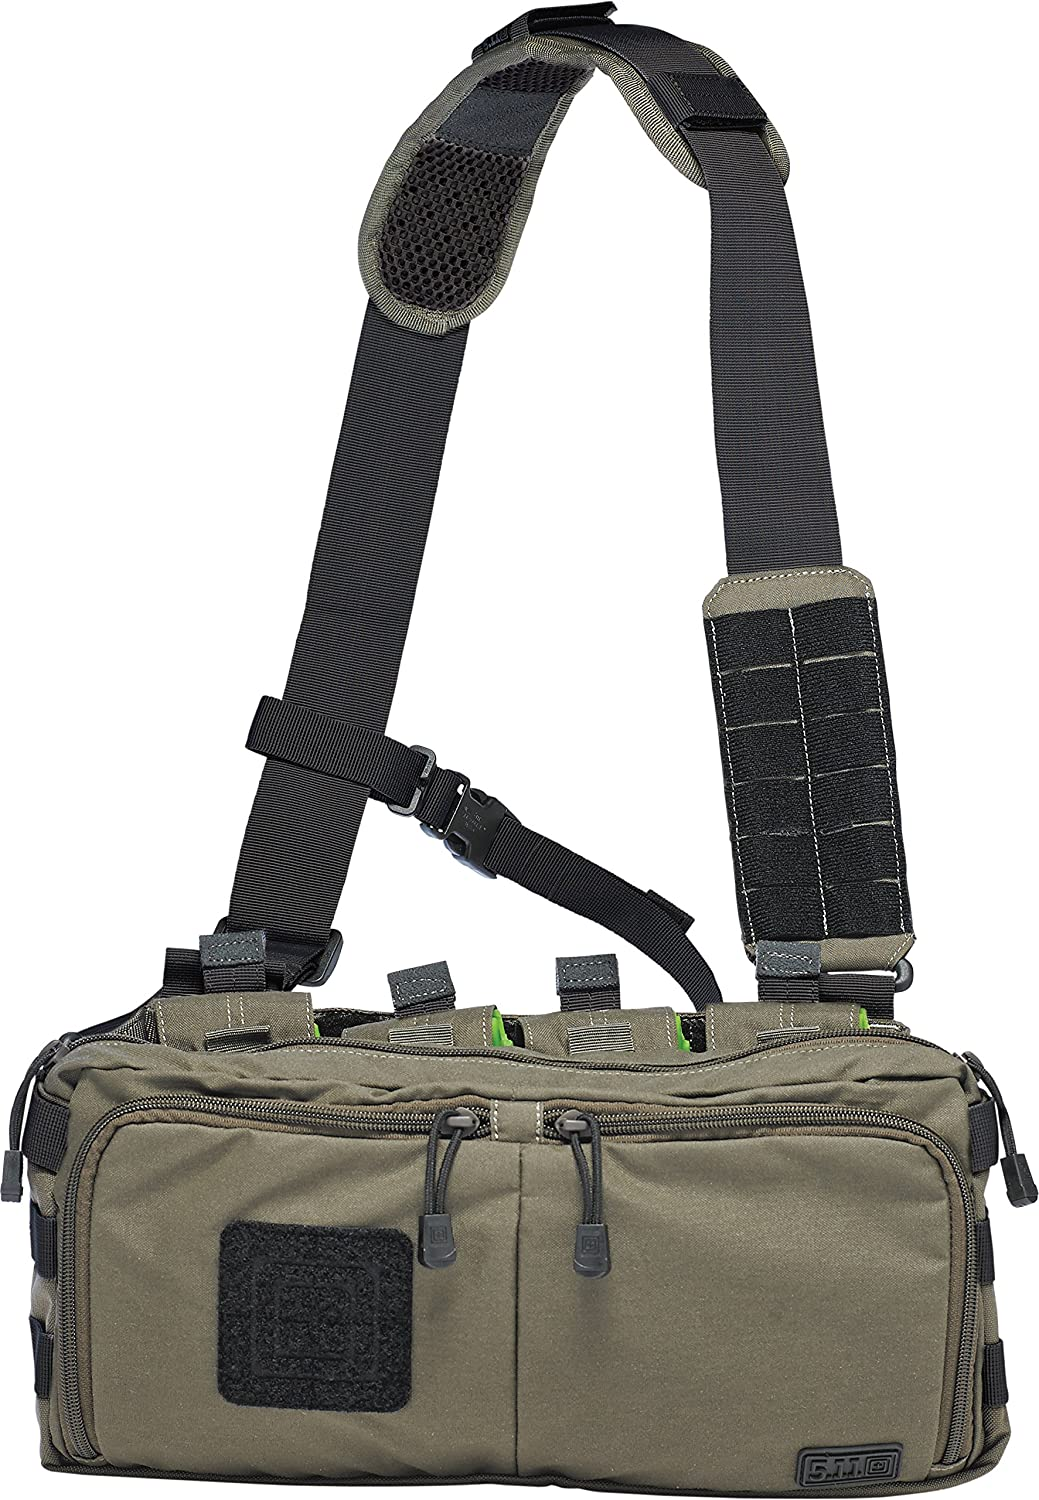 5.11 Tactical 4 Banger Bag One Size OD Trail by 5.11: Amazon.es: Deportes y aire libre